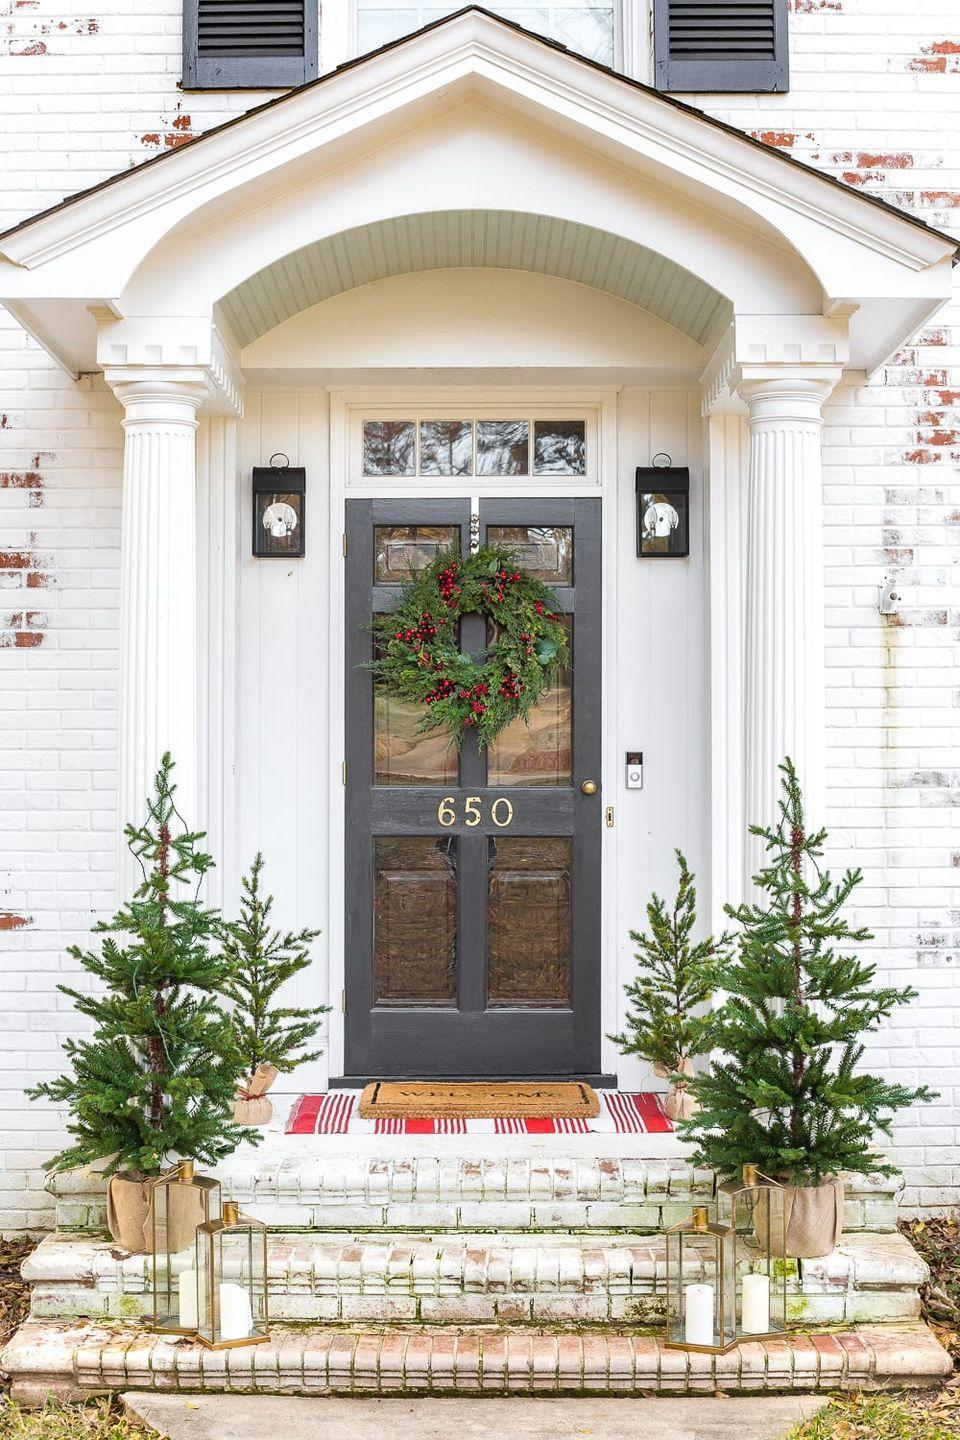 "<p>It's not just about the wreath: Line your front stoop with small trees to make guests feel warm and welcome. As a bonus, put a festive towel or blanket underneath the doormat for an unexpected pop of color.</p><p><em><a href=""https://www.blesserhouse.com/colonial-christmas-outdoor-decor/"" rel=""nofollow noopener"" target=""_blank"" data-ylk=""slk:Get the tutorial at Blesser House »"" class=""link rapid-noclick-resp"">Get the tutorial at Blesser House »</a></em></p>"